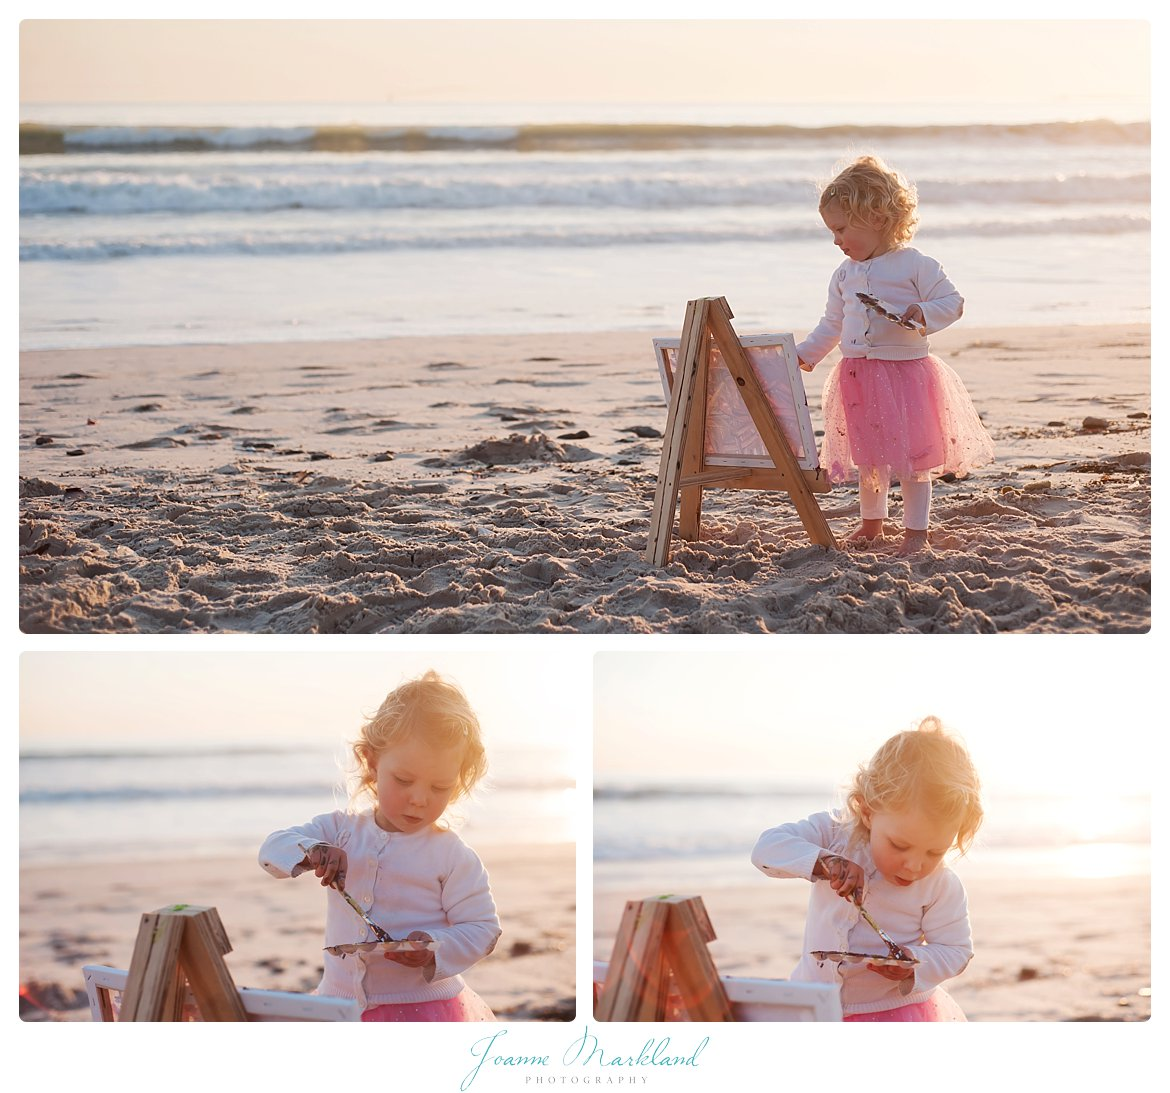 toddler-birthday-portraits-family-photographer-joanne-markland-photography-cape-town-010